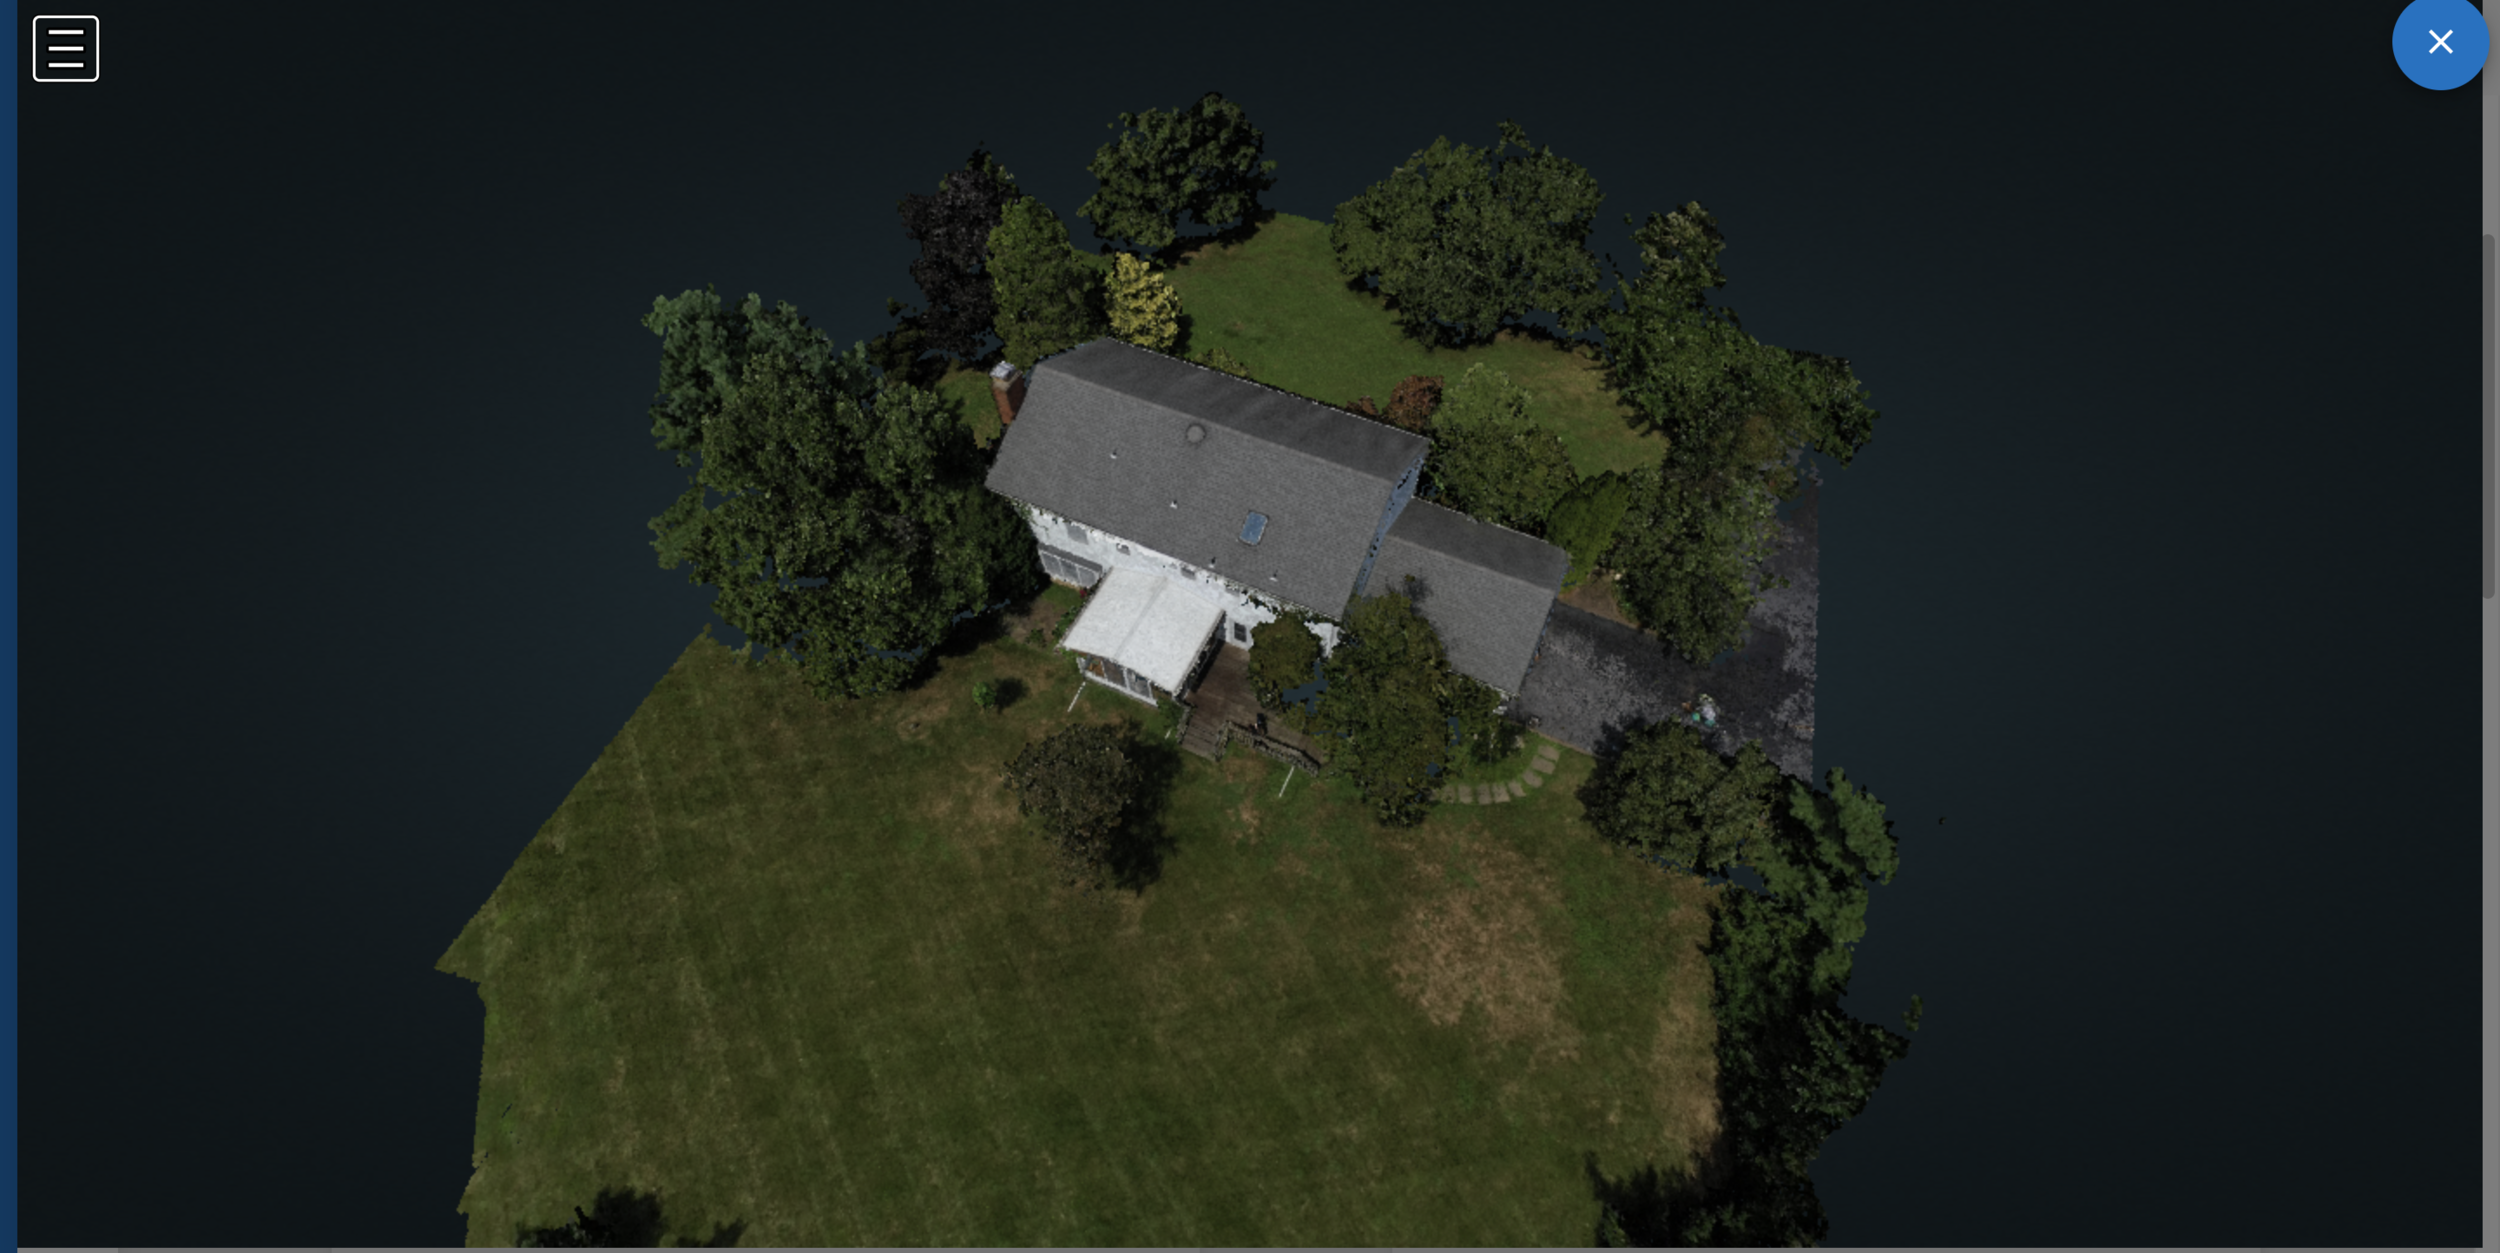 5 minute 3D model of the house of SkyeBrowse co-founder, Bobby Ouyang (not raided by SWAT)